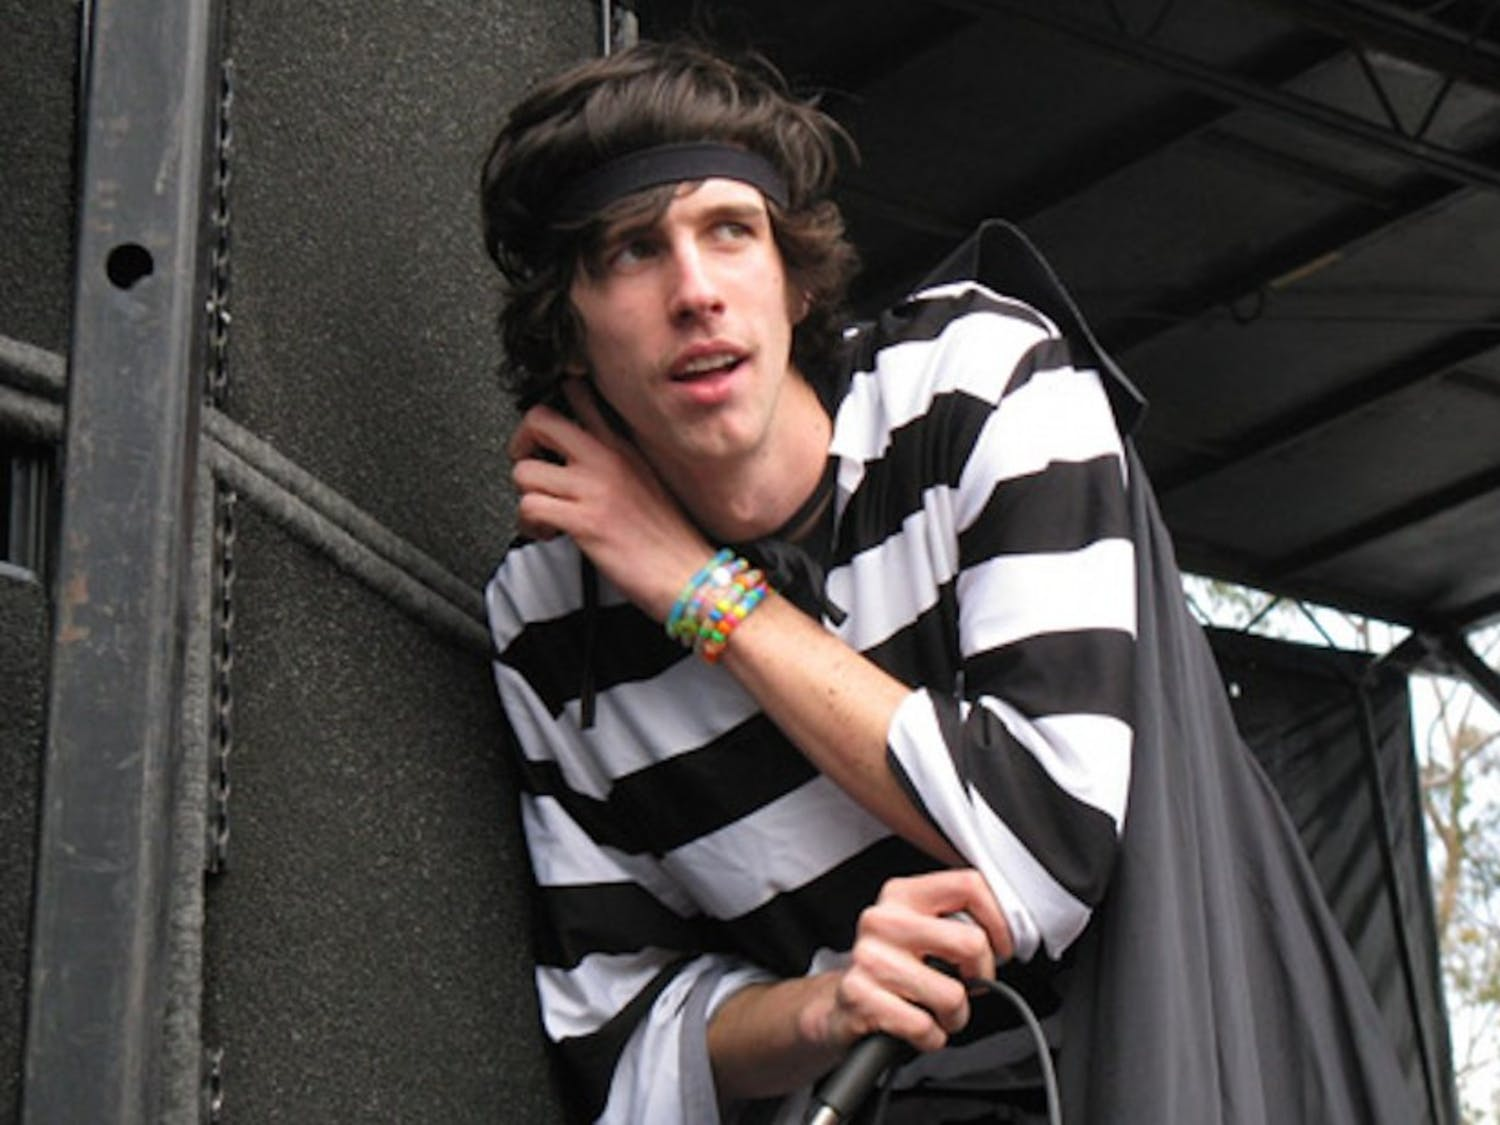 Nathaniel Motte of electronic duo 3OH!3 performs at Bamboozle Music Festival in 2008.